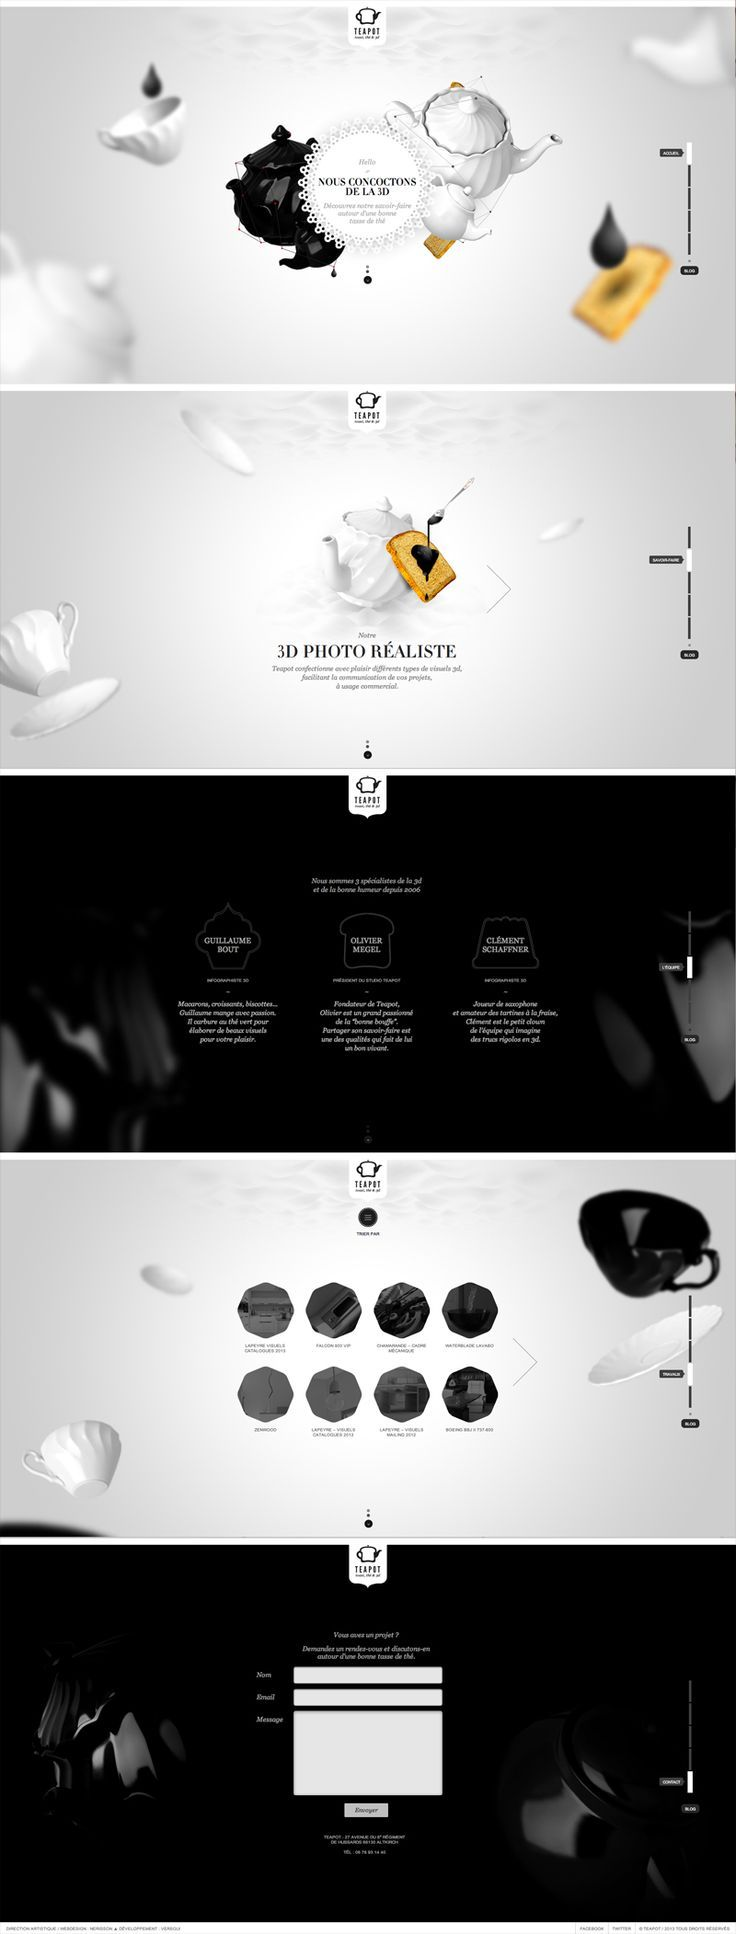 Teapot – Black & White web design